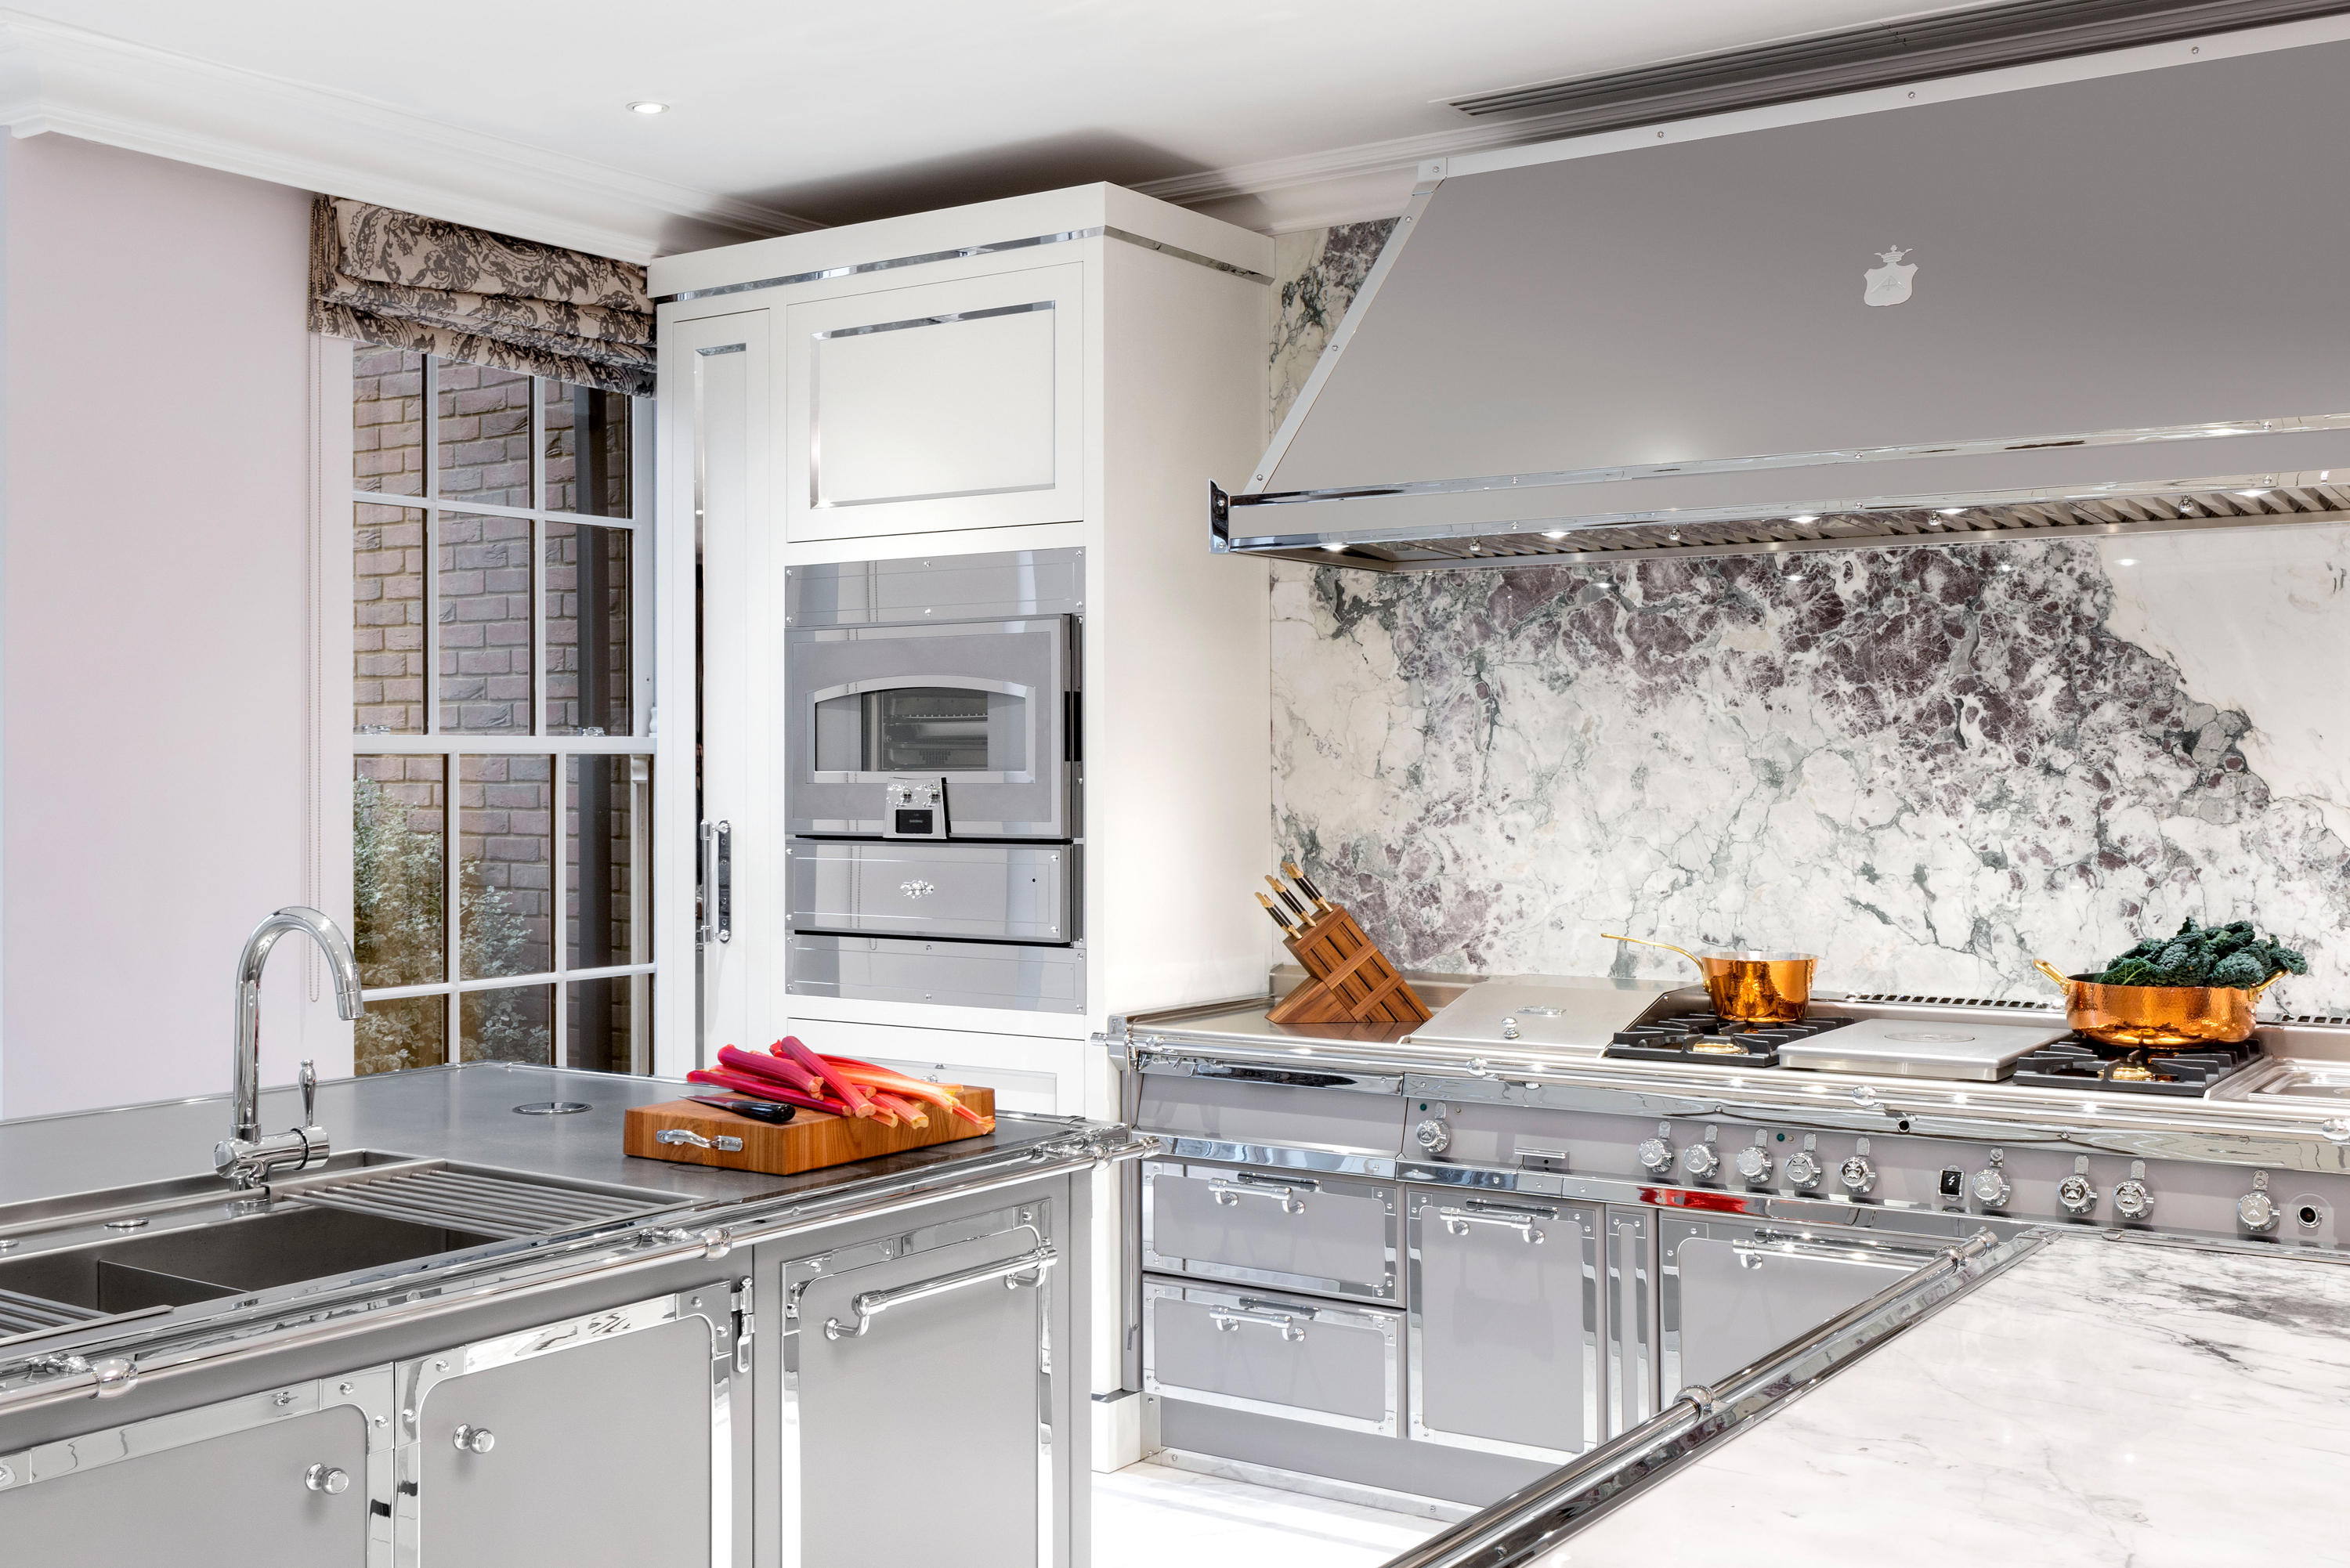 SILVER GREY KITCHEN  Fitted kitchens from Officine Gullo